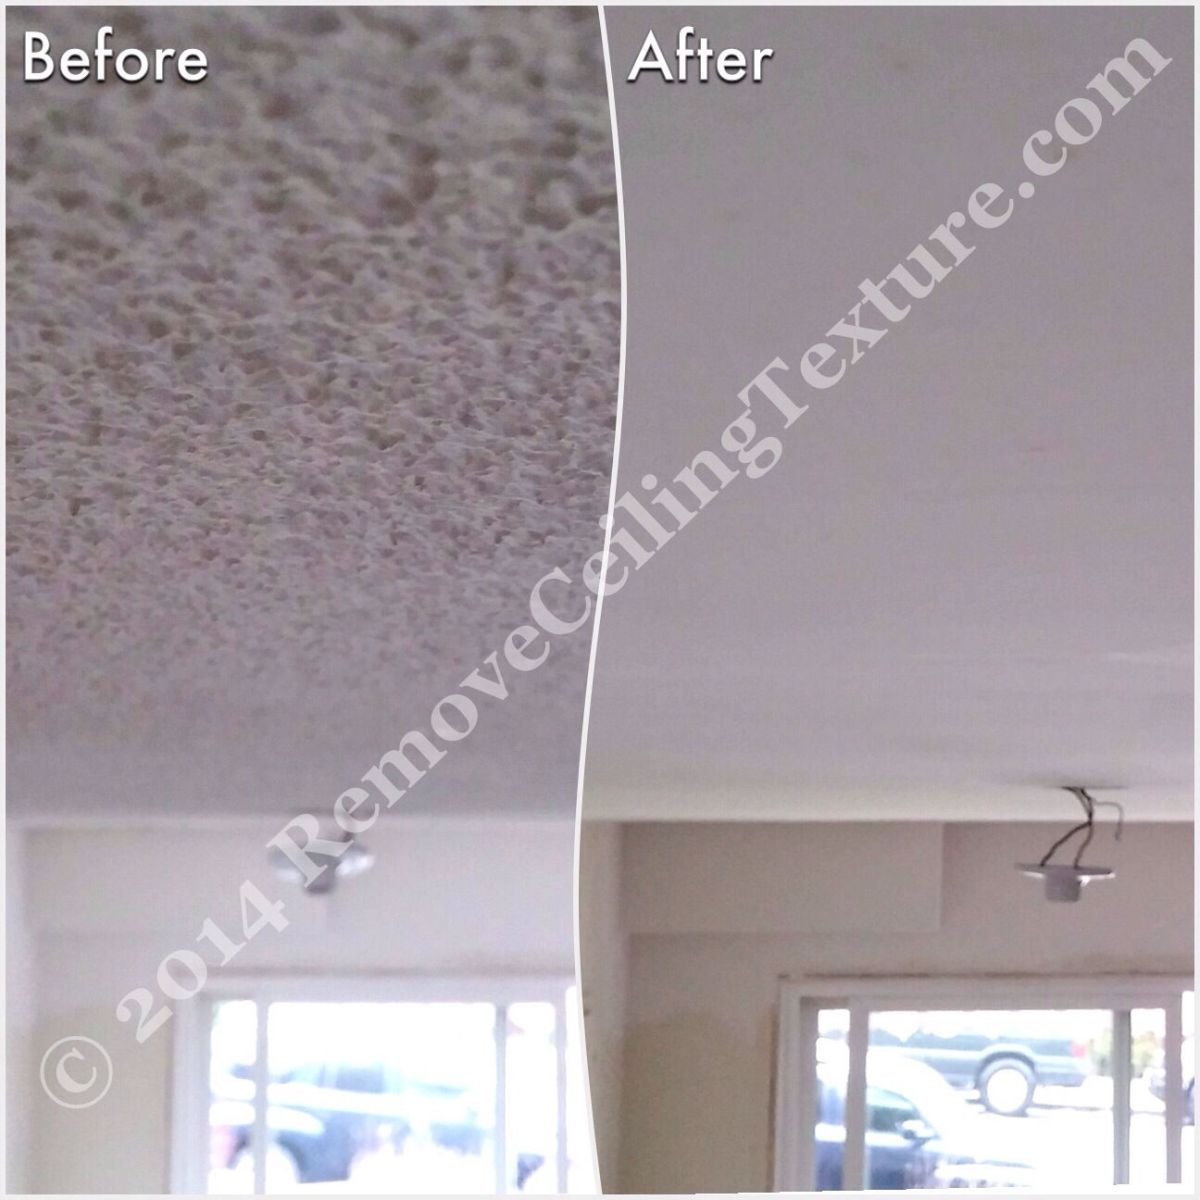 How To Remove Popcorn Ceiling How To Remove A Popcorn Ceiling Related : Apps Directories